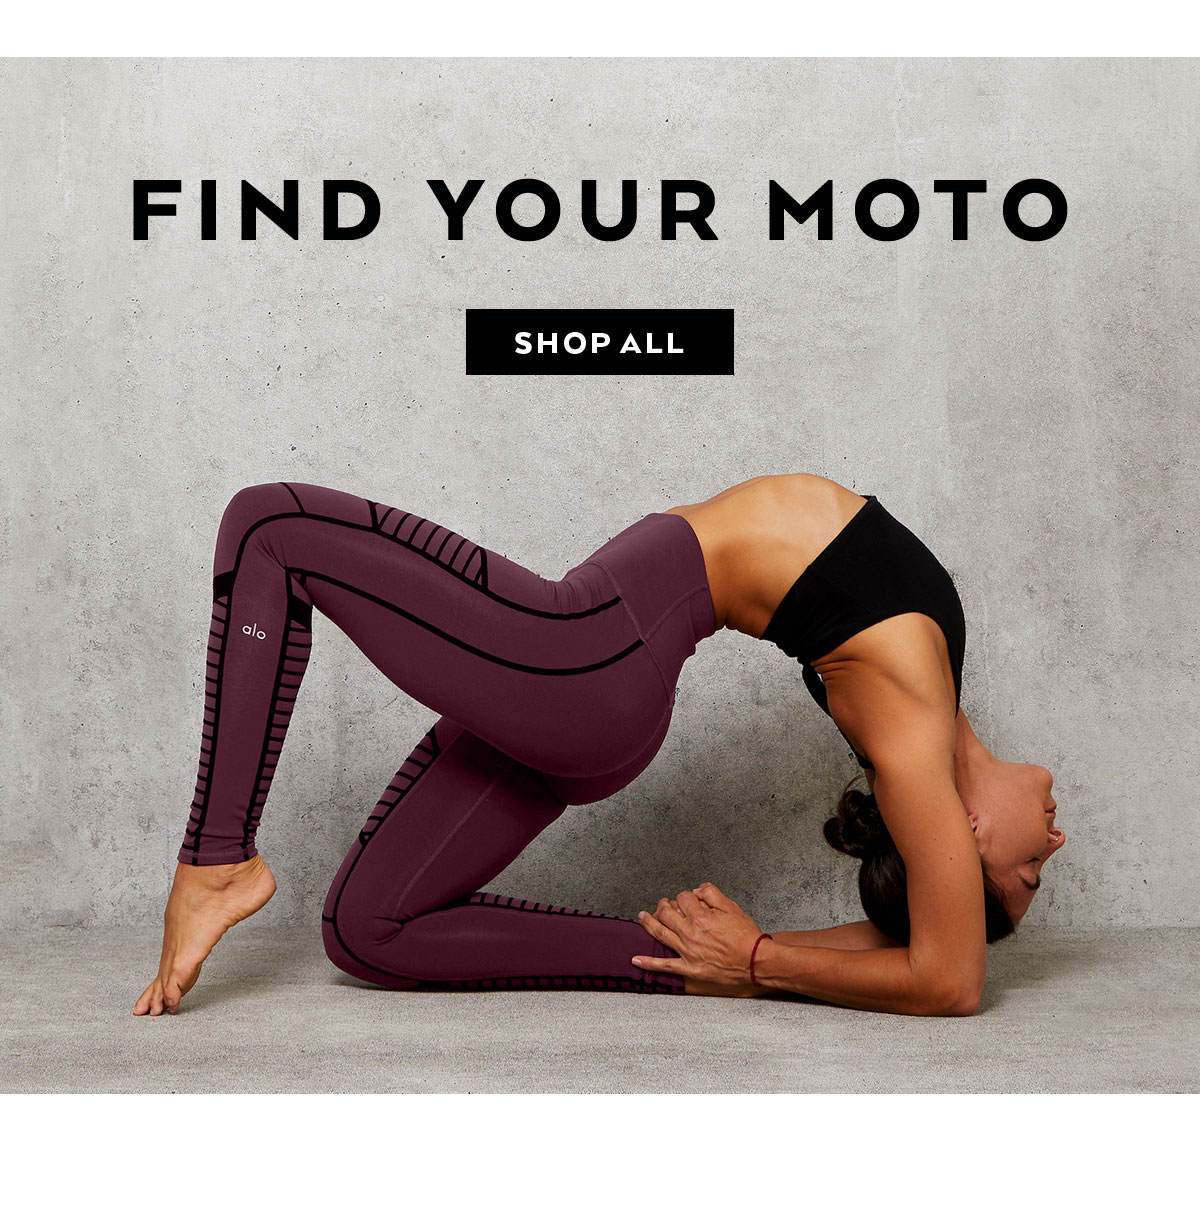 FIND YOUR MOTO. SHOP ALL